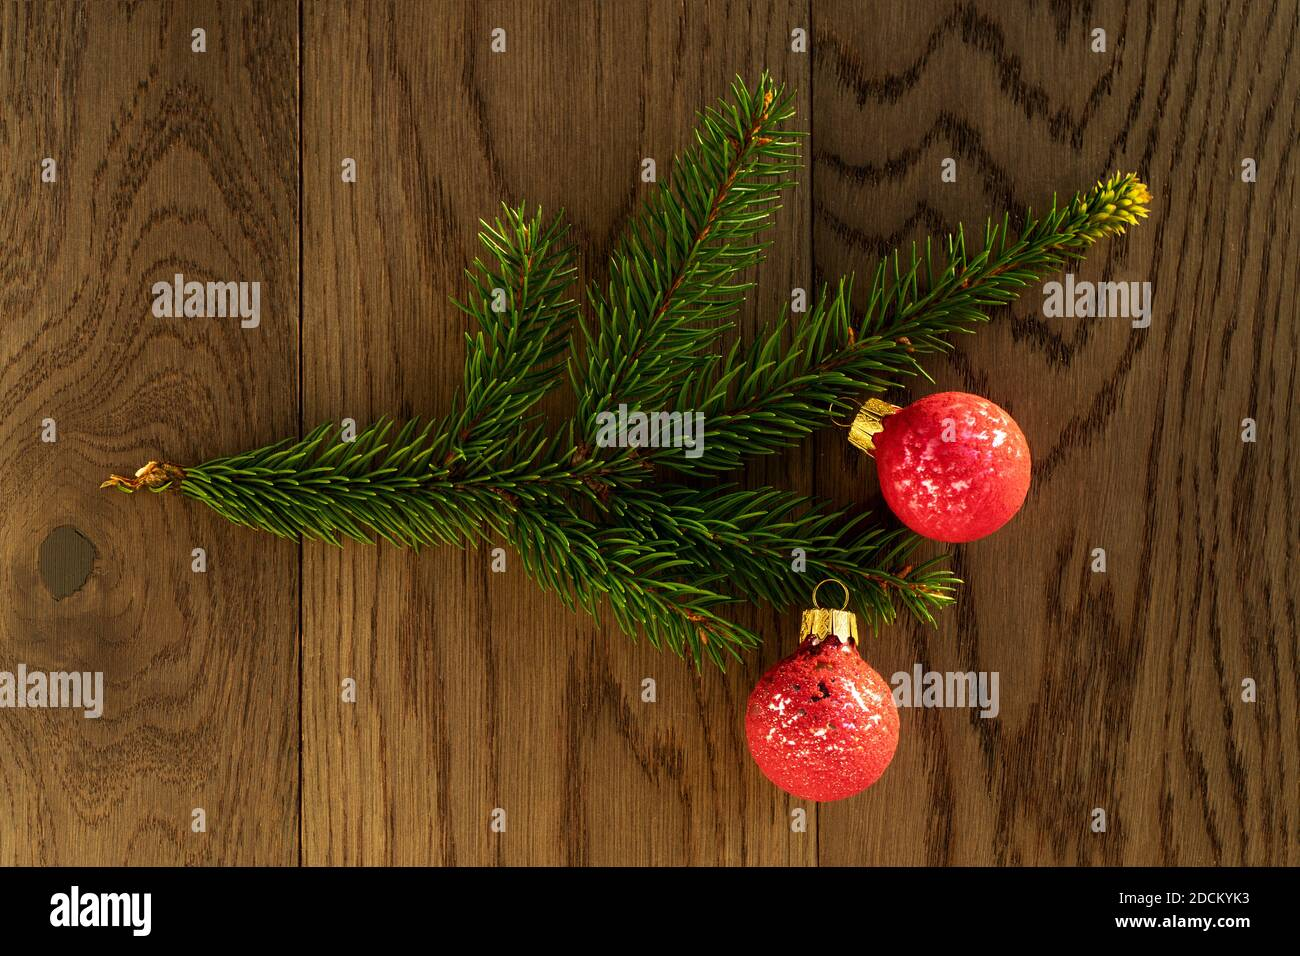 Christmas Decoration A Branch Of Fir Tree With Three Pink Baubles On Rustic Wooden Background Holiday Time Theme For Christmas And New Year Stock Photo Alamy